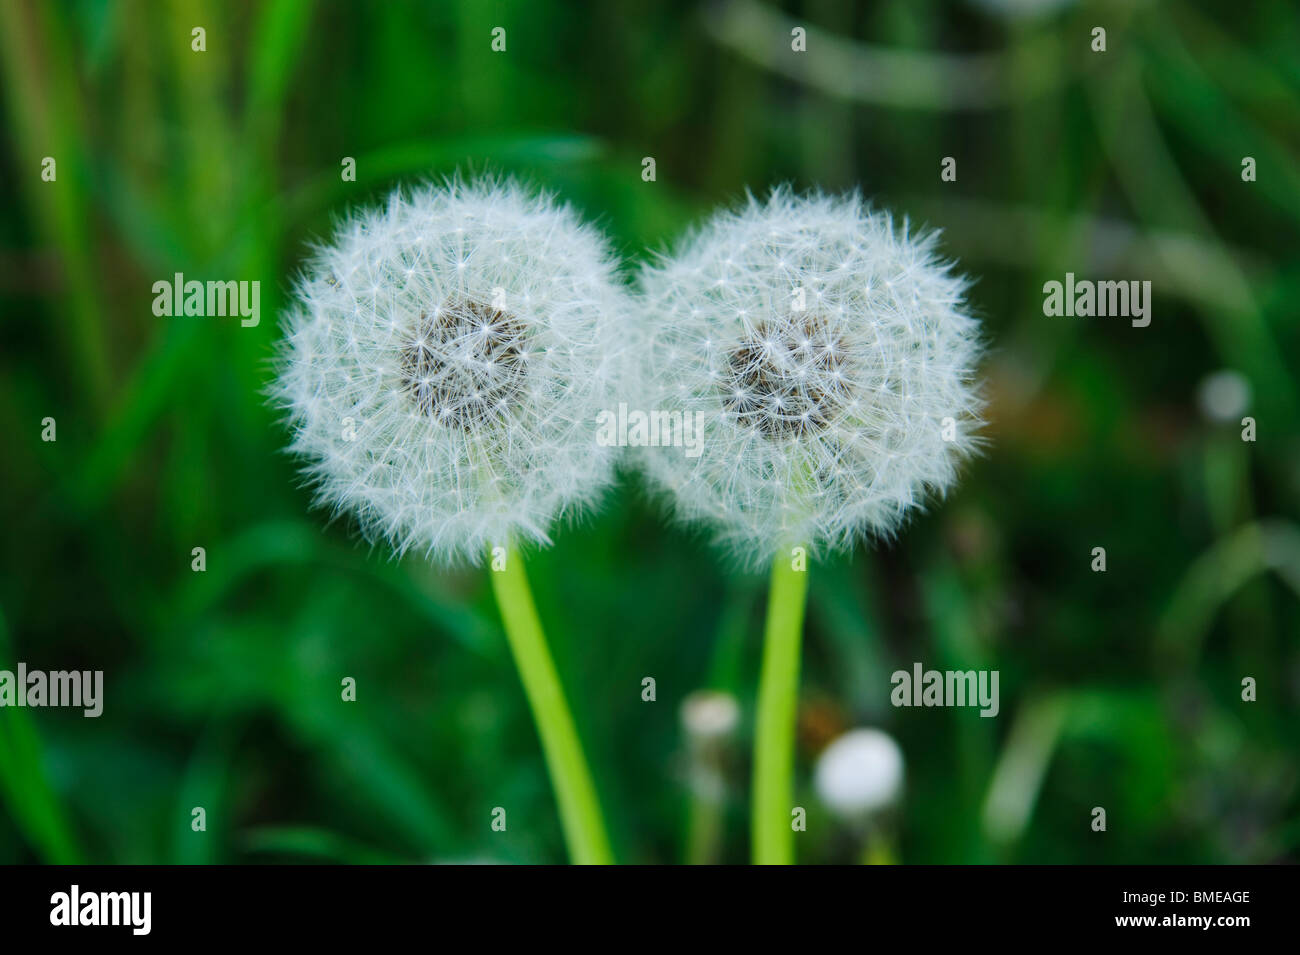 Faded dandelions, close-up, Sweden. - Stock Image